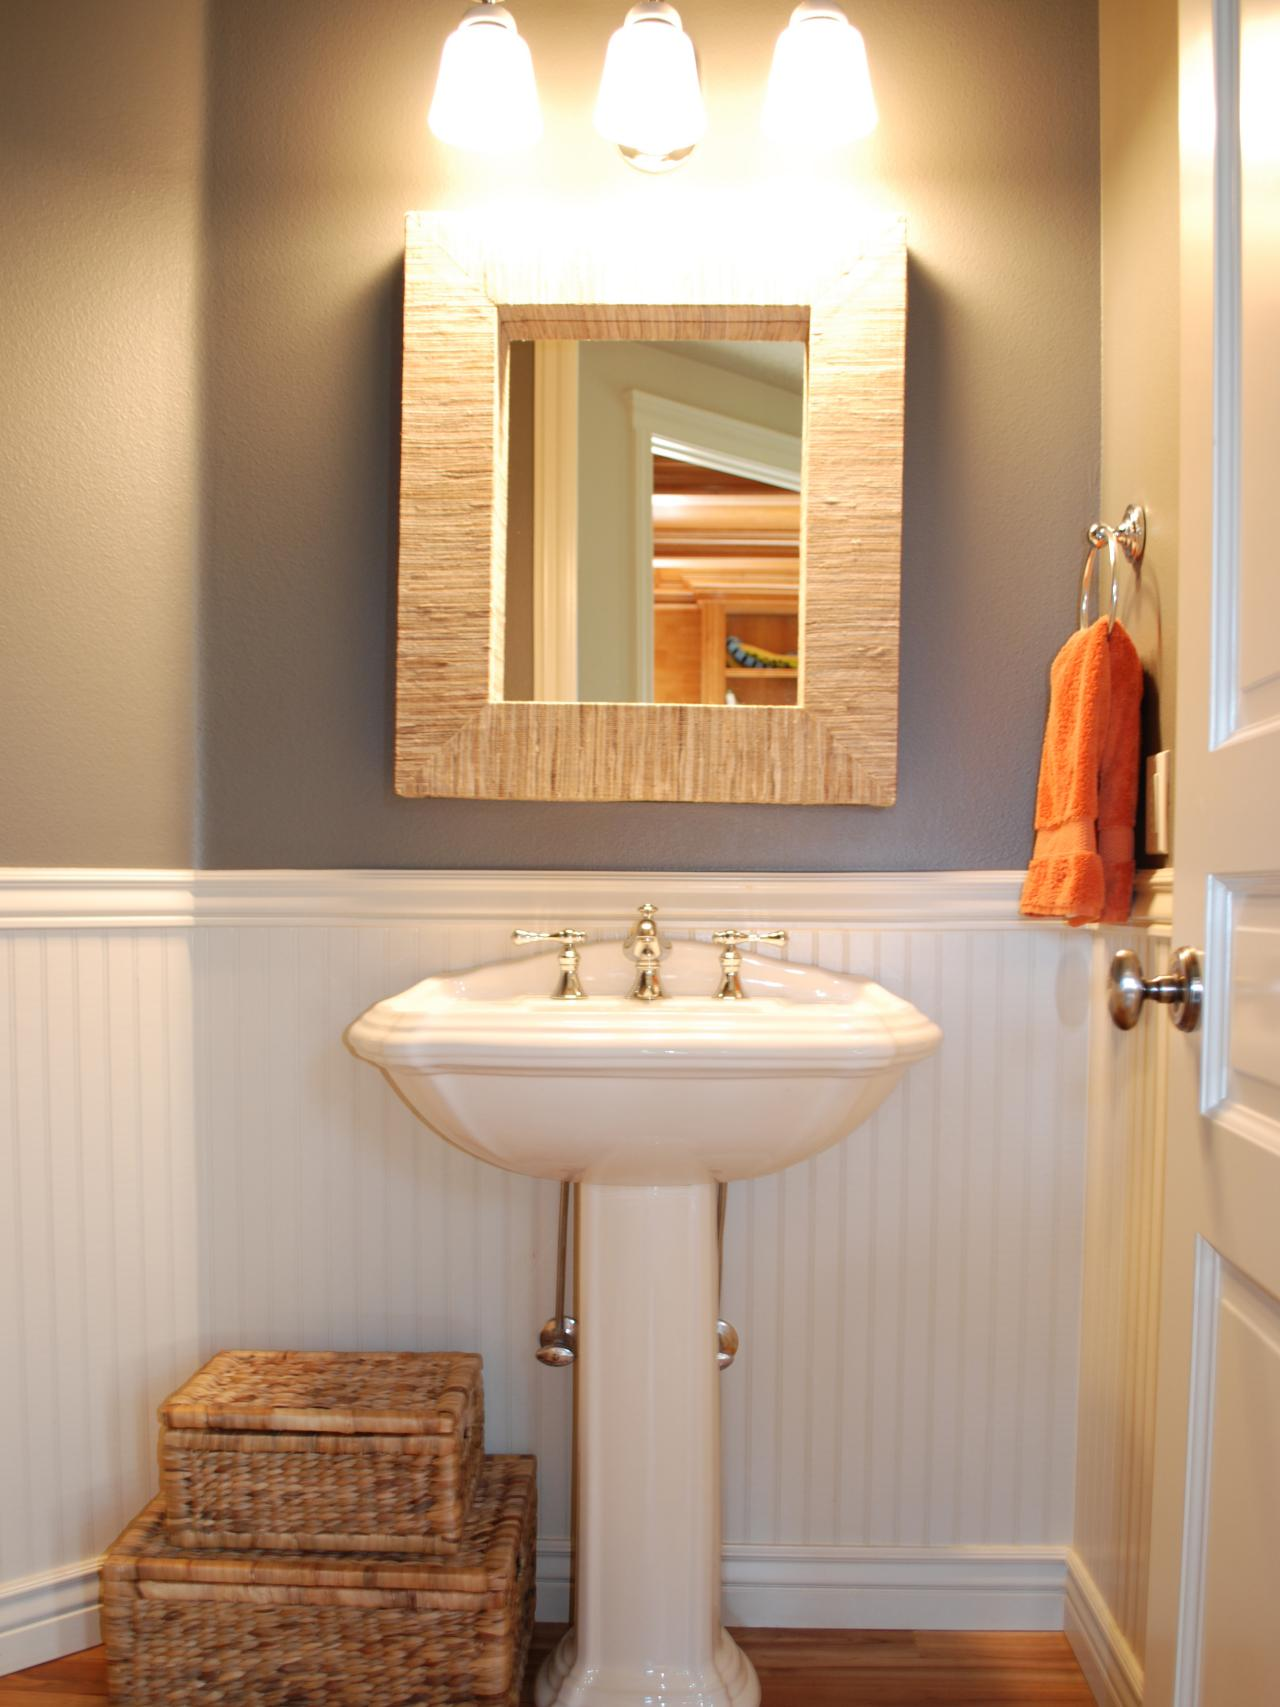 12 clever bathroom storage ideas bathroom ideas for Hgtv small bathroom design ideas